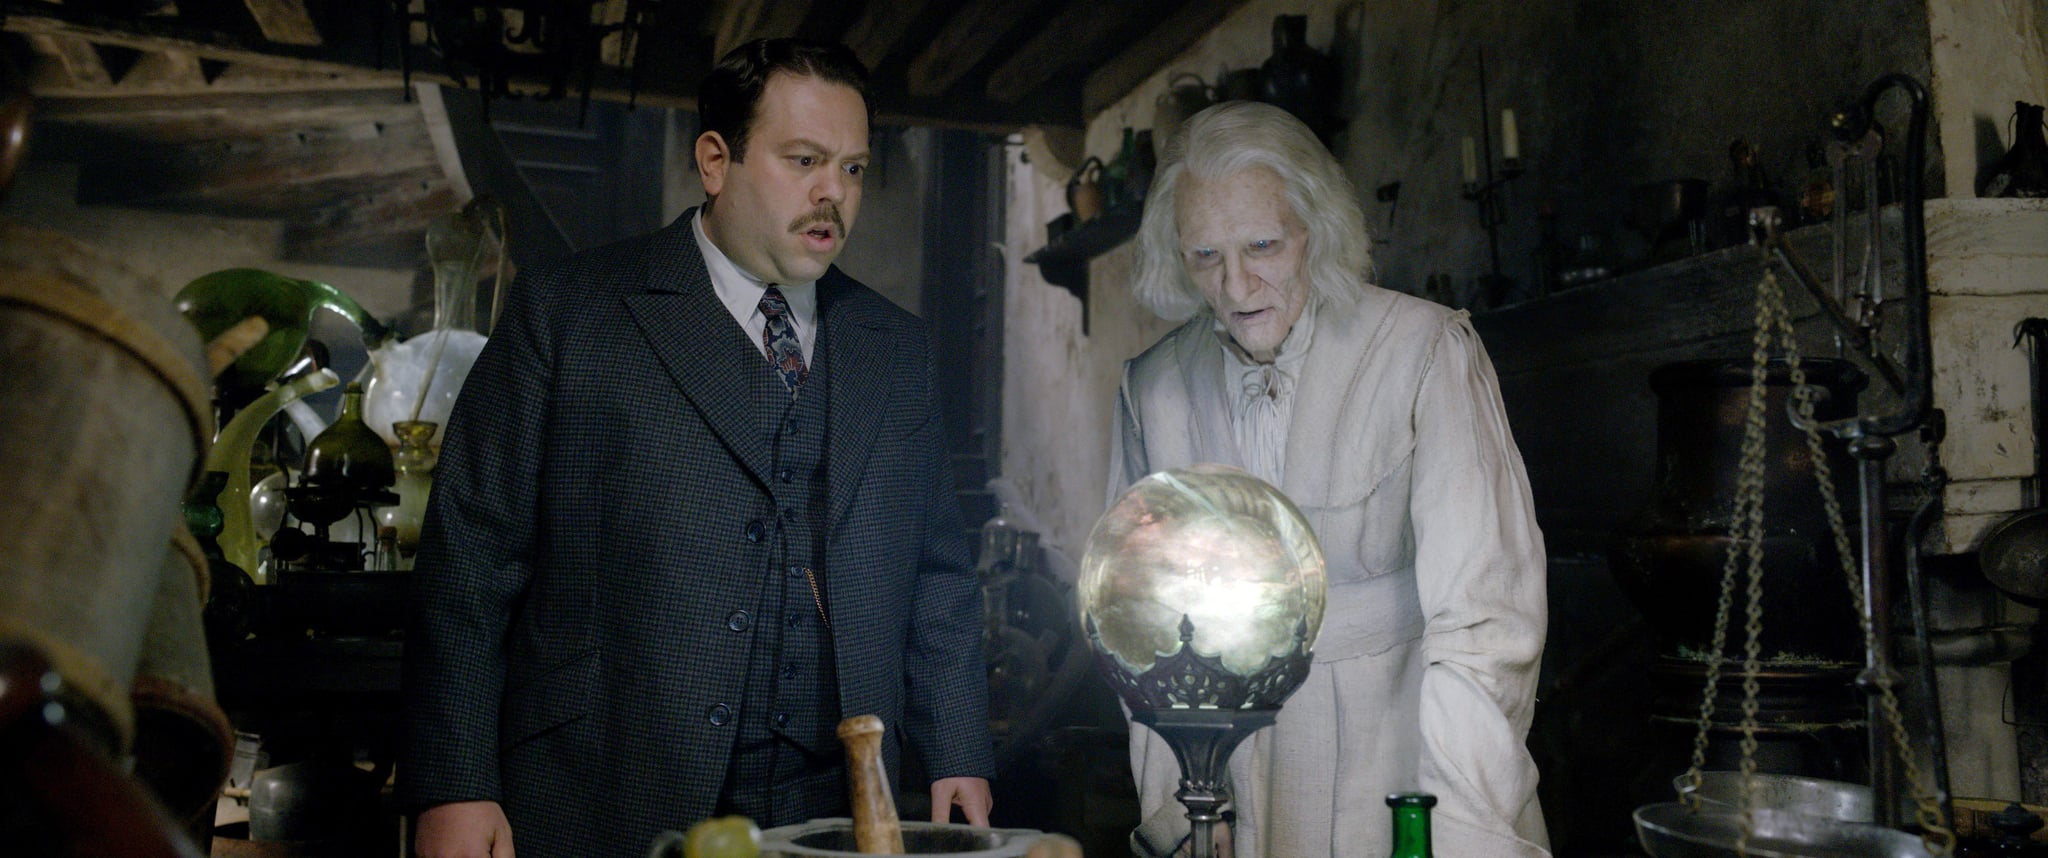 FANTASTIC BEASTS: THE CRIMES OF GRINDELWALD, from left: Dan Fogler, Brontis Jodourowsky, 2018.  2018 Warner Bros. Ent.  All Rights Reserved.Wizarding WorldTM Publishing Rights  J.K. Rowling WIZARDING WORLD and all related characters and elements are trademarks of and  Warner Bros. Entertainment Inc. /Courtesy Everett Collection